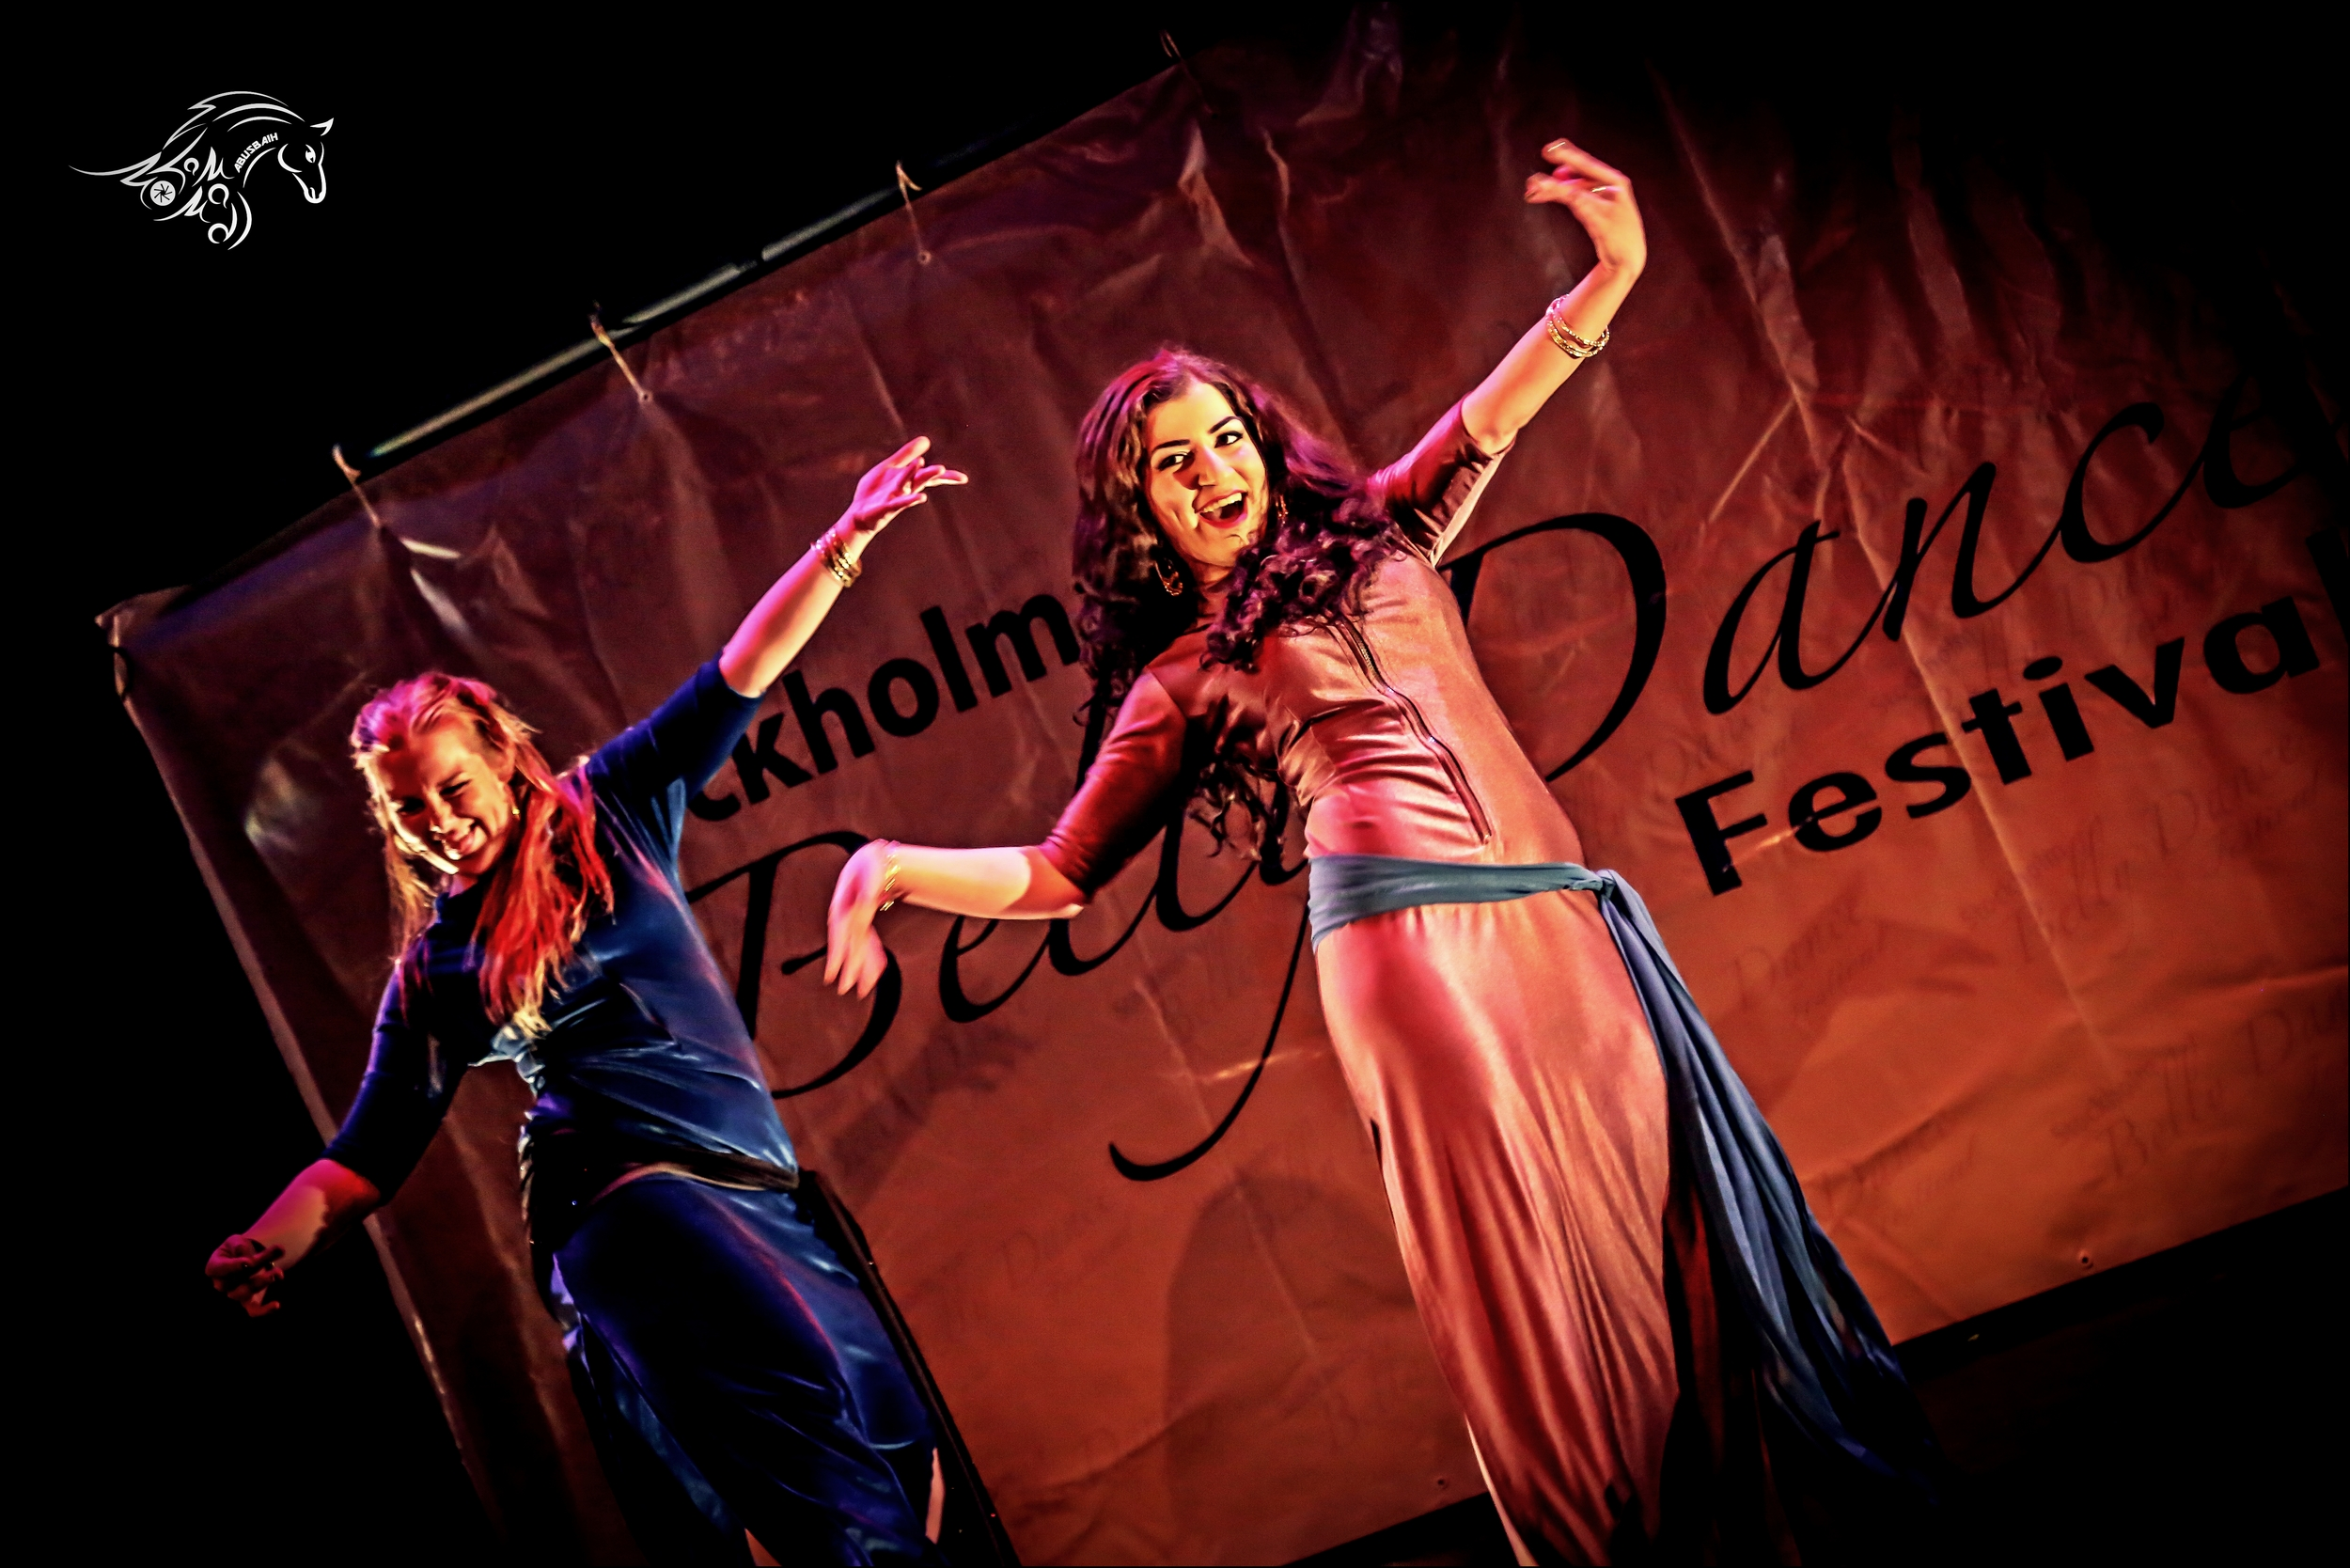 Maria Oriental & Elnaz - Shaabi at Stockholm Belly Dance Festival 2015. Photo: Mohammad Abusbaih.   https://www.facebook.com/mohd.abusbaih